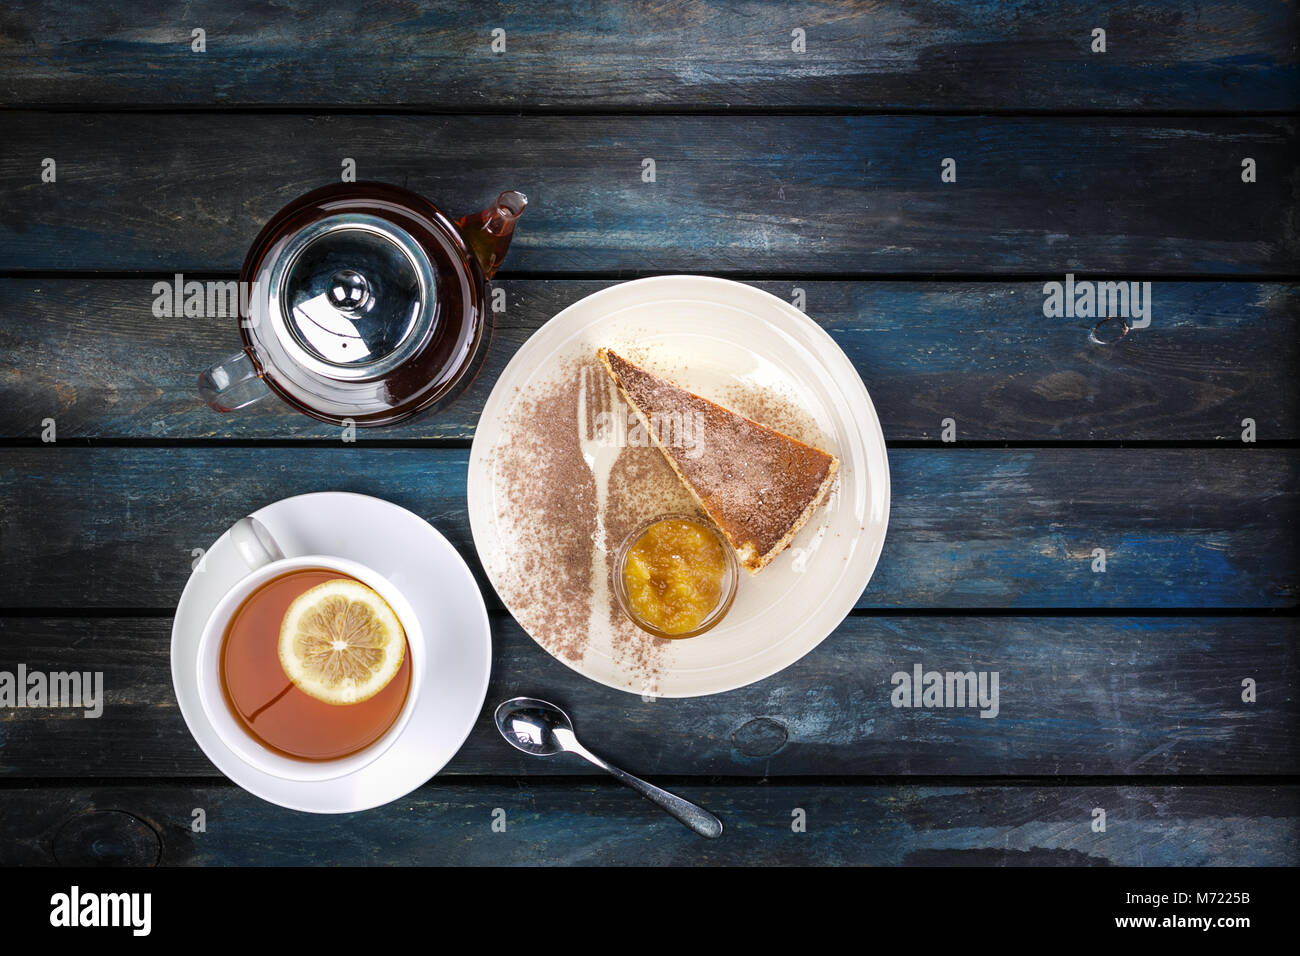 Slice of Cheesecake with jam and tea kettle with lemon on a colored wooden background. Top view - Stock Image